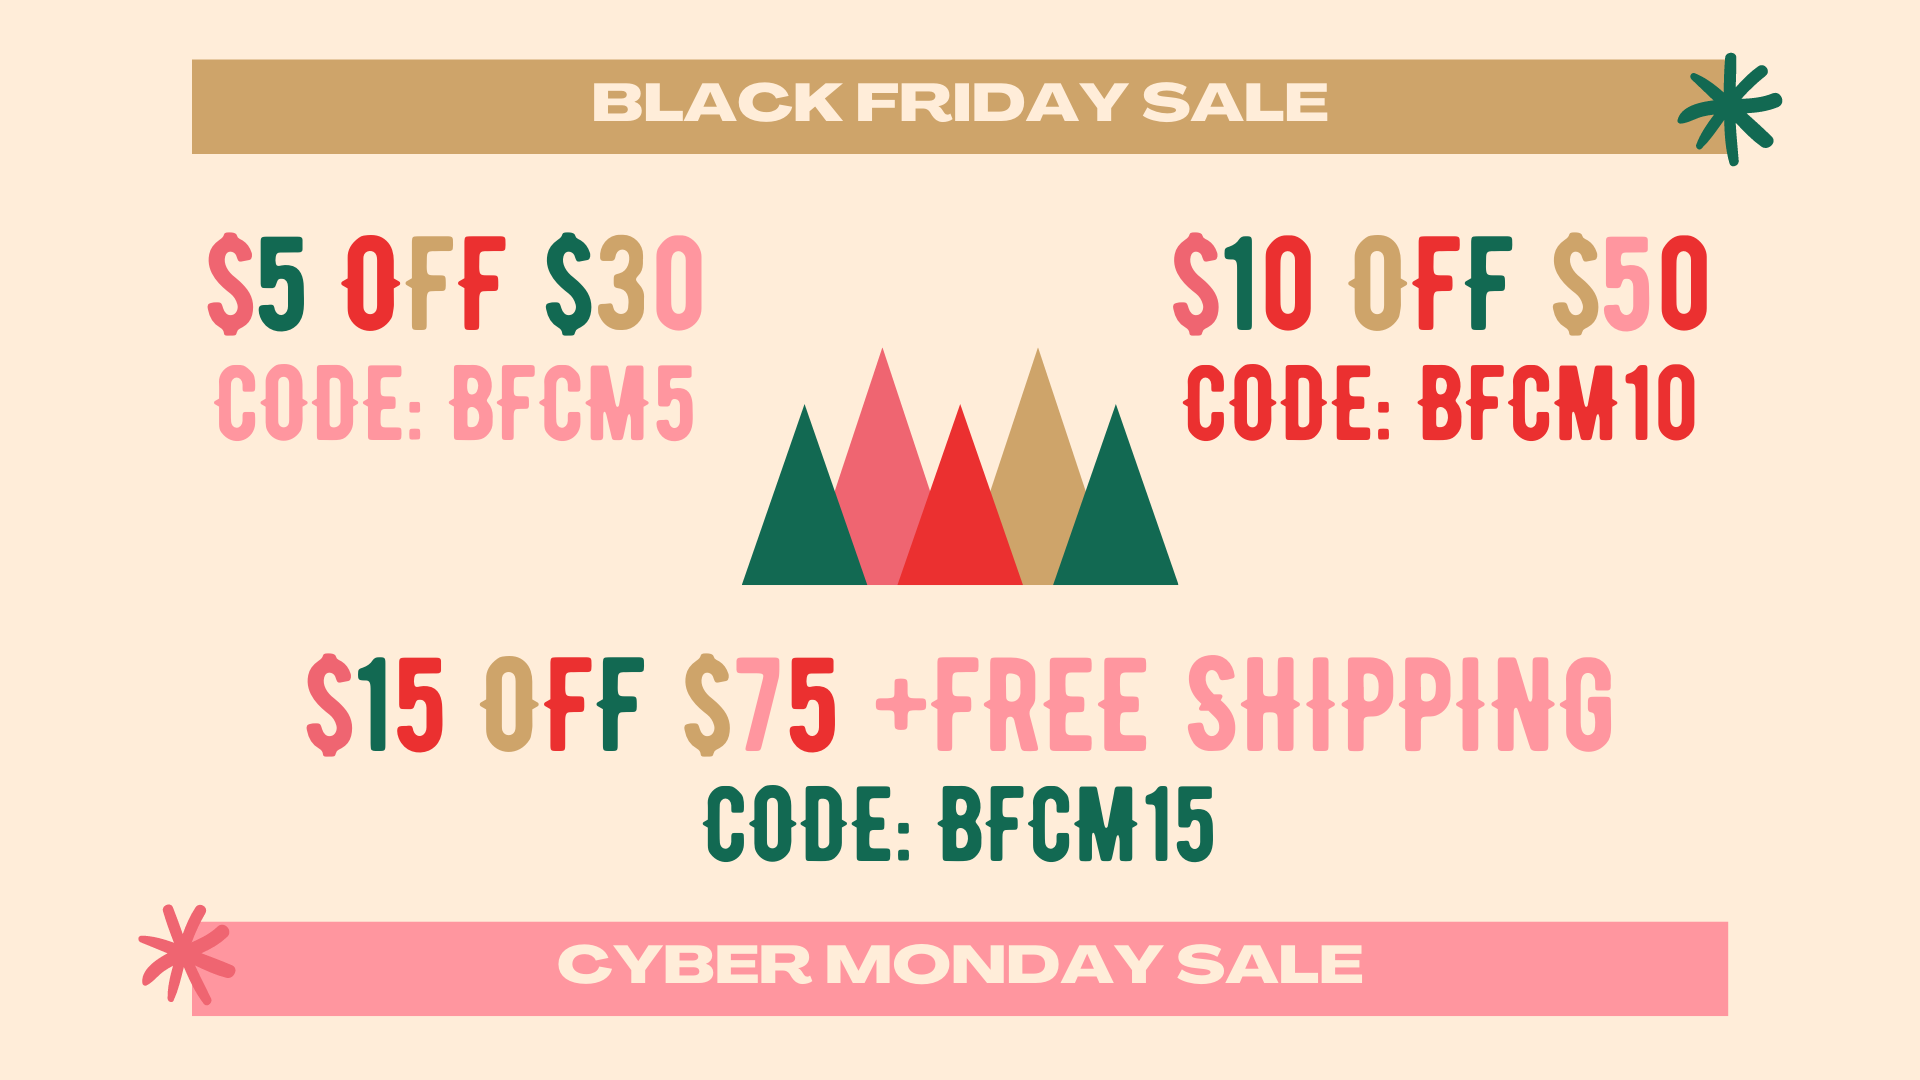 BLACK FRIDAY AND CYBER MONDAY SALES FLYER